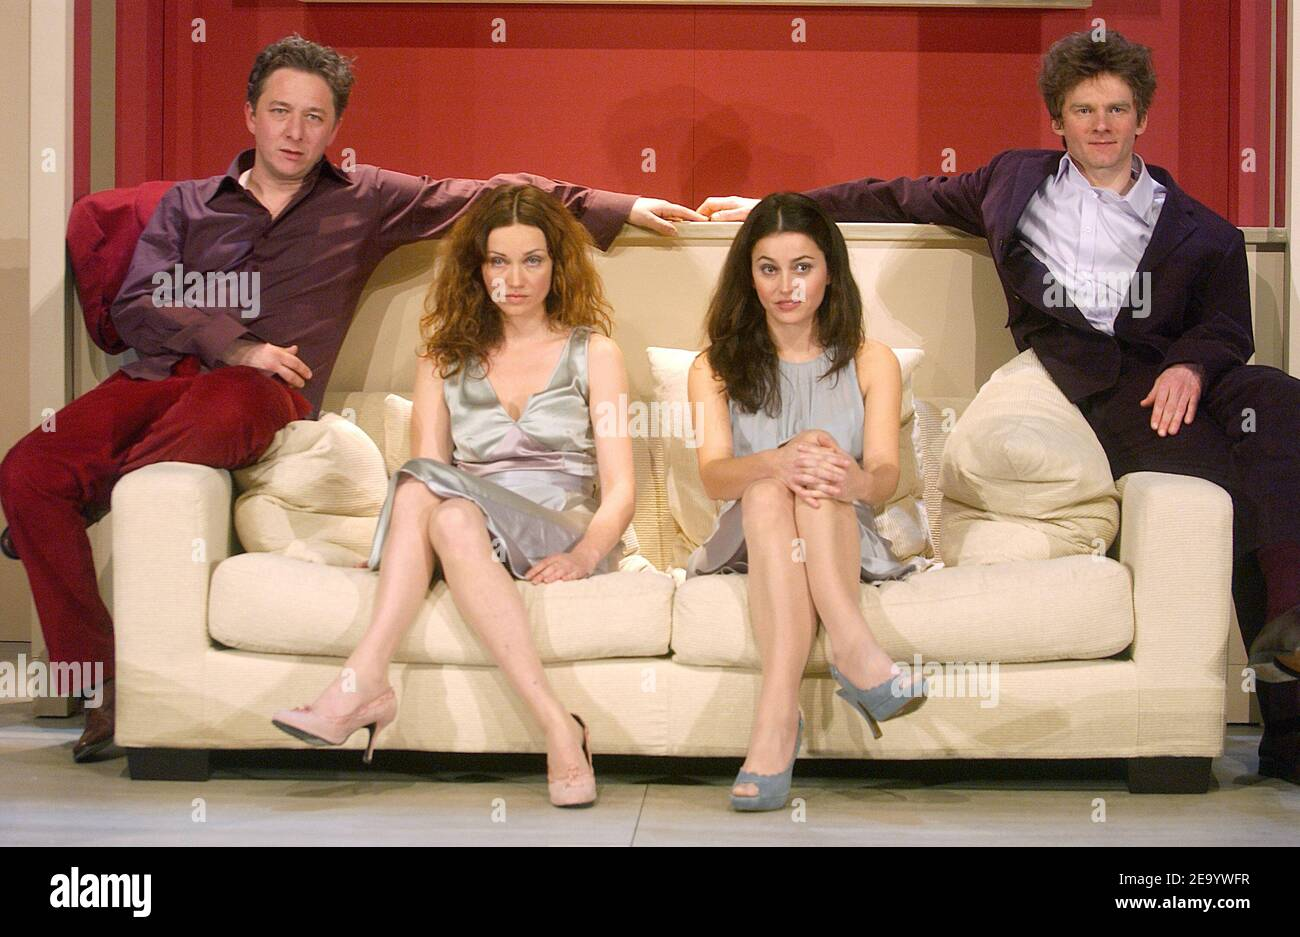 (L-R) Nicolas Vaude, Marine Delterme, Anne Charrier and Nicolas Briancon perform in the play 'Le Manege' at Petit Theatre Montparnasse in Paris, France, on January 25, 2005. Photo by Giancarlo Gorassini/ABACA. Stock Photo